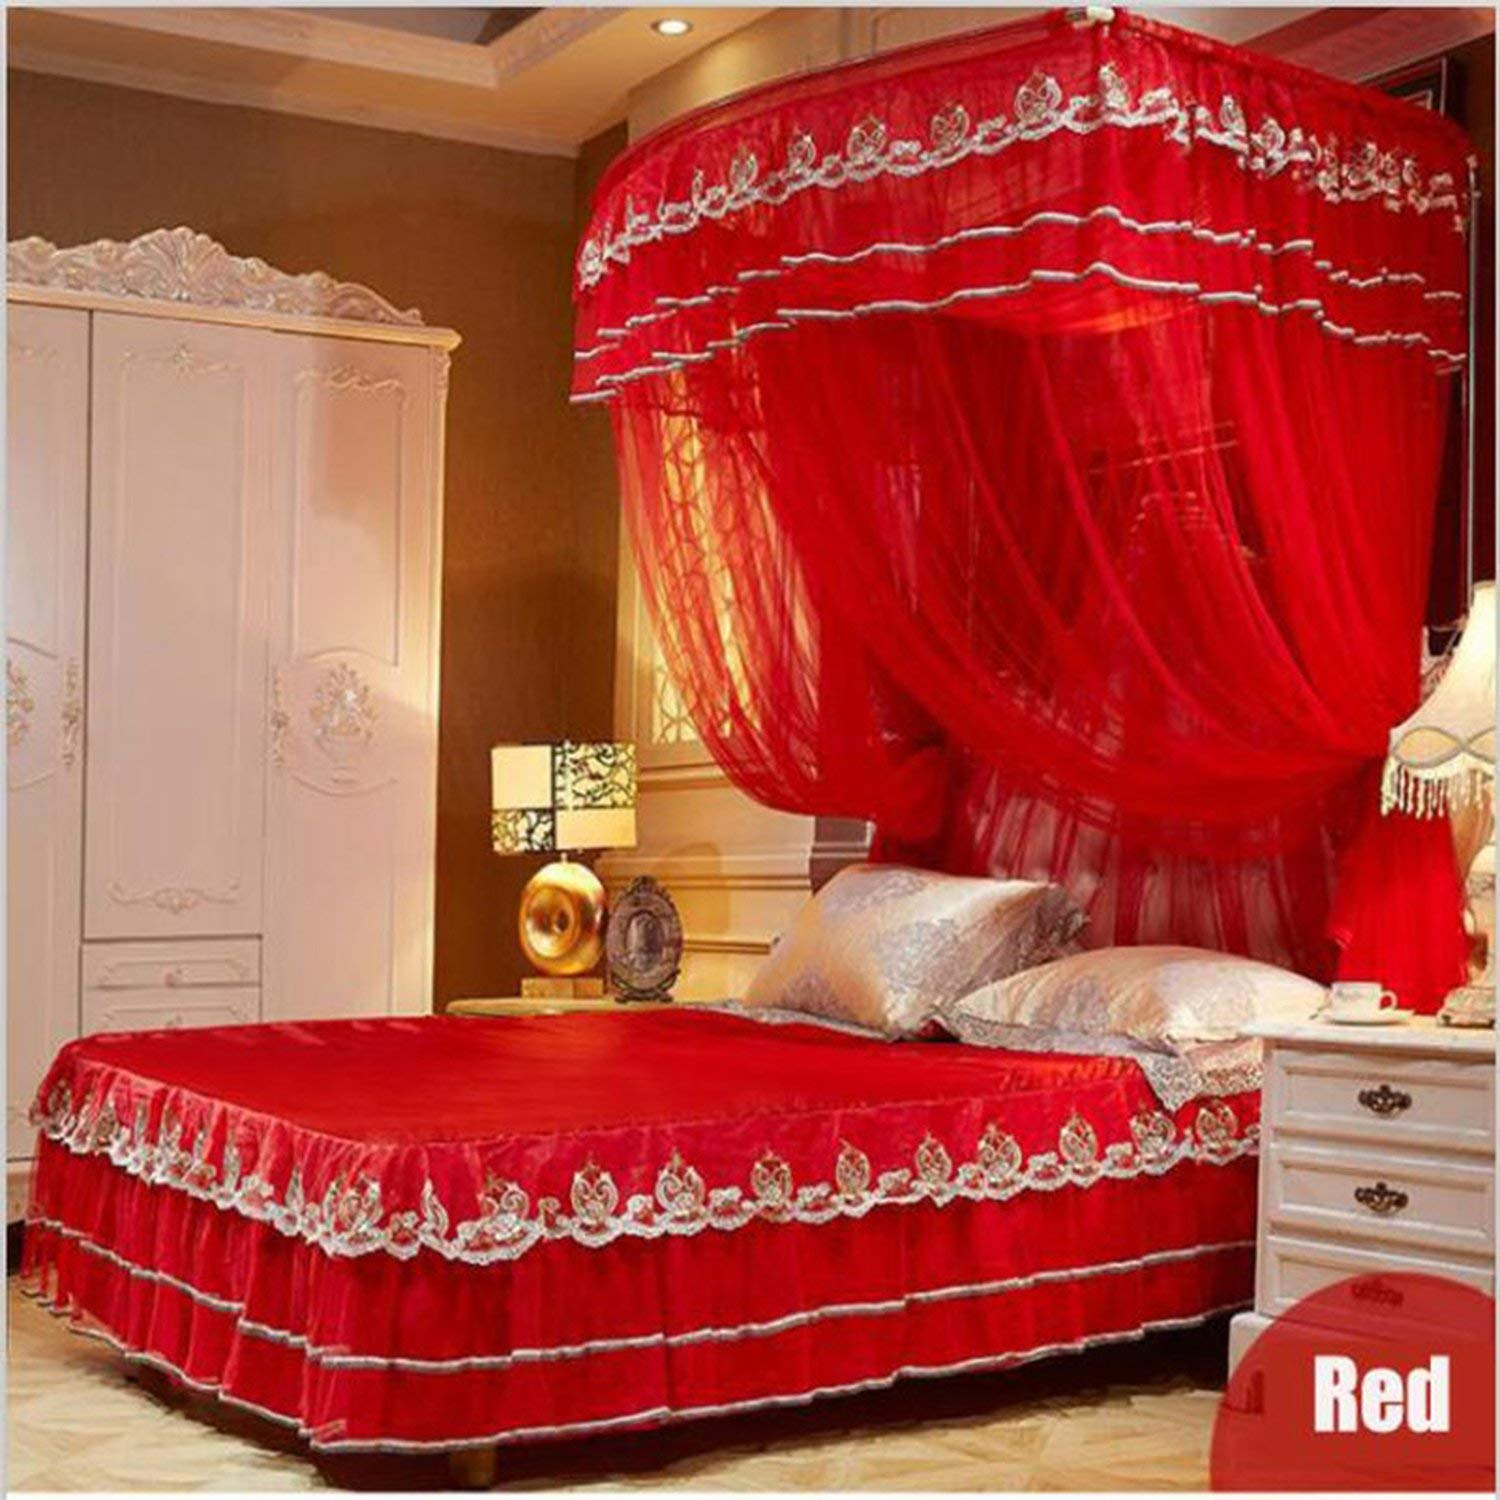 Fishing Rod Retractable Mosquito Net Multi Size Wedding Lace Mosquito Net 50D Encryption Soft Yarn Nice Bed Decor,Red,1.5Mwx2Mlx2.1Mh by special shine-shop mosquito net (Image #4)